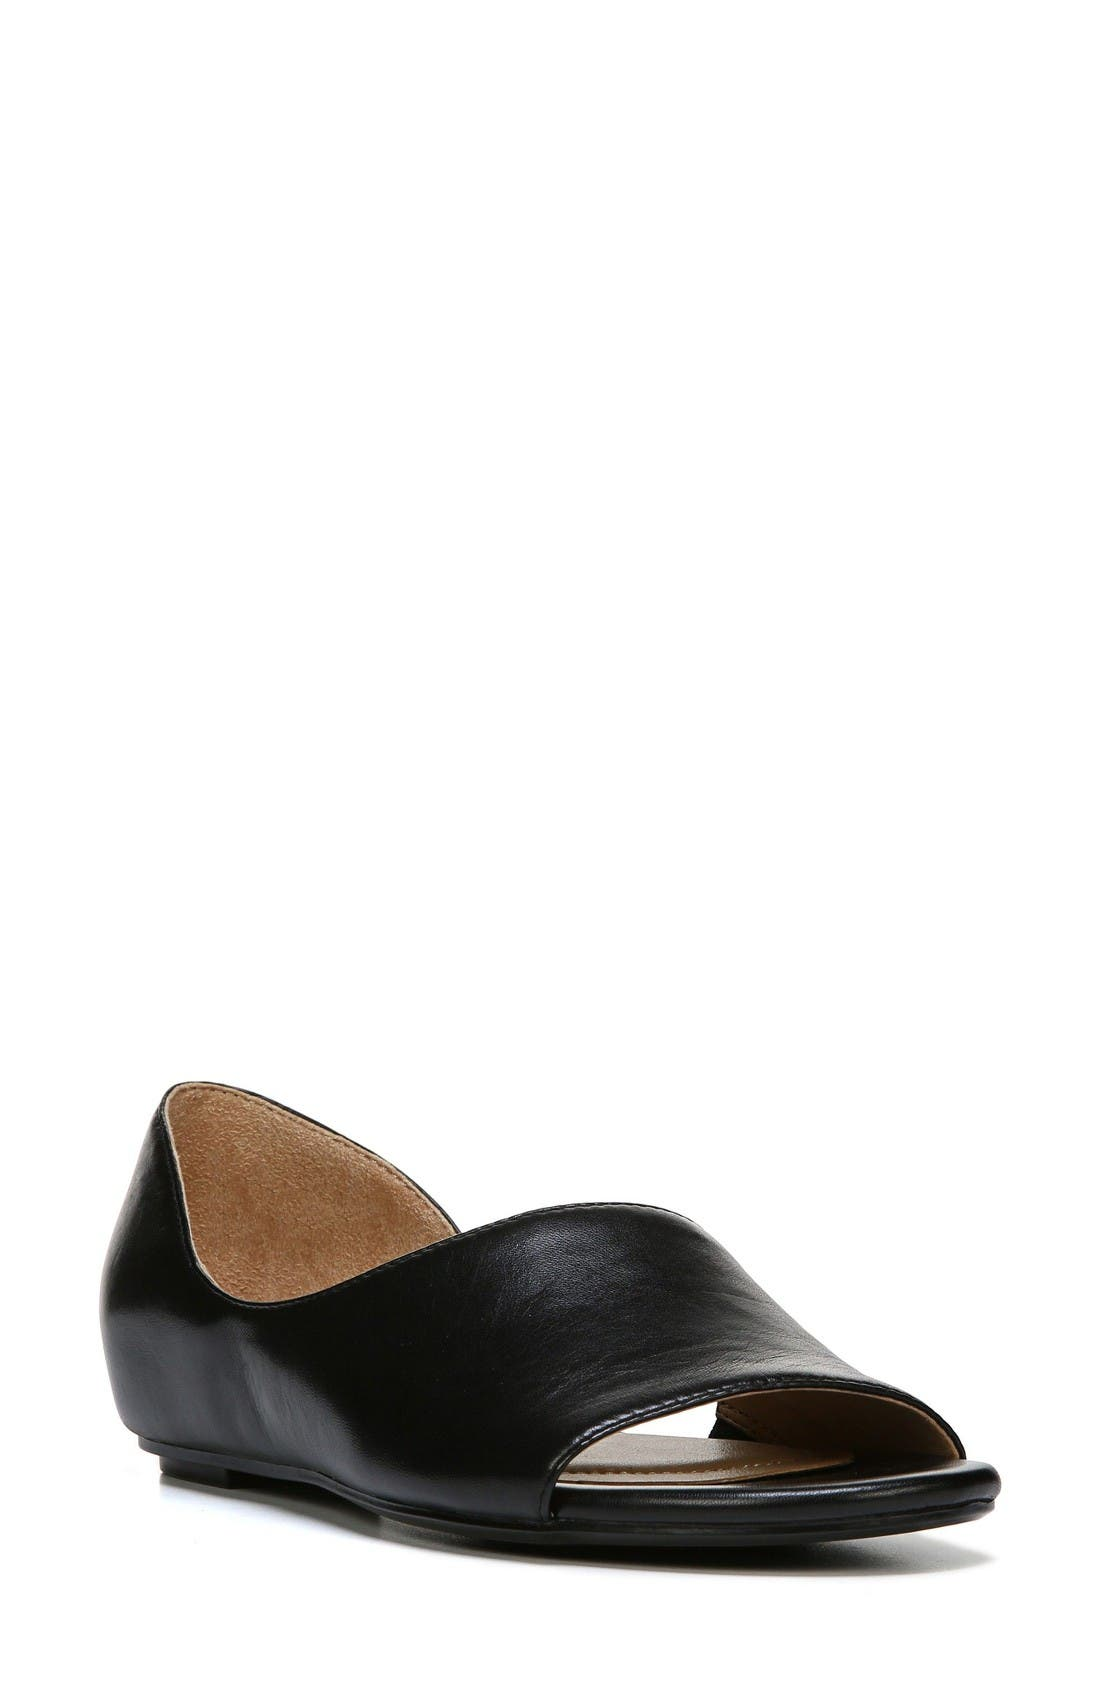 Lucie Half d'Orsay Flat,                         Main,                         color, Black Leather